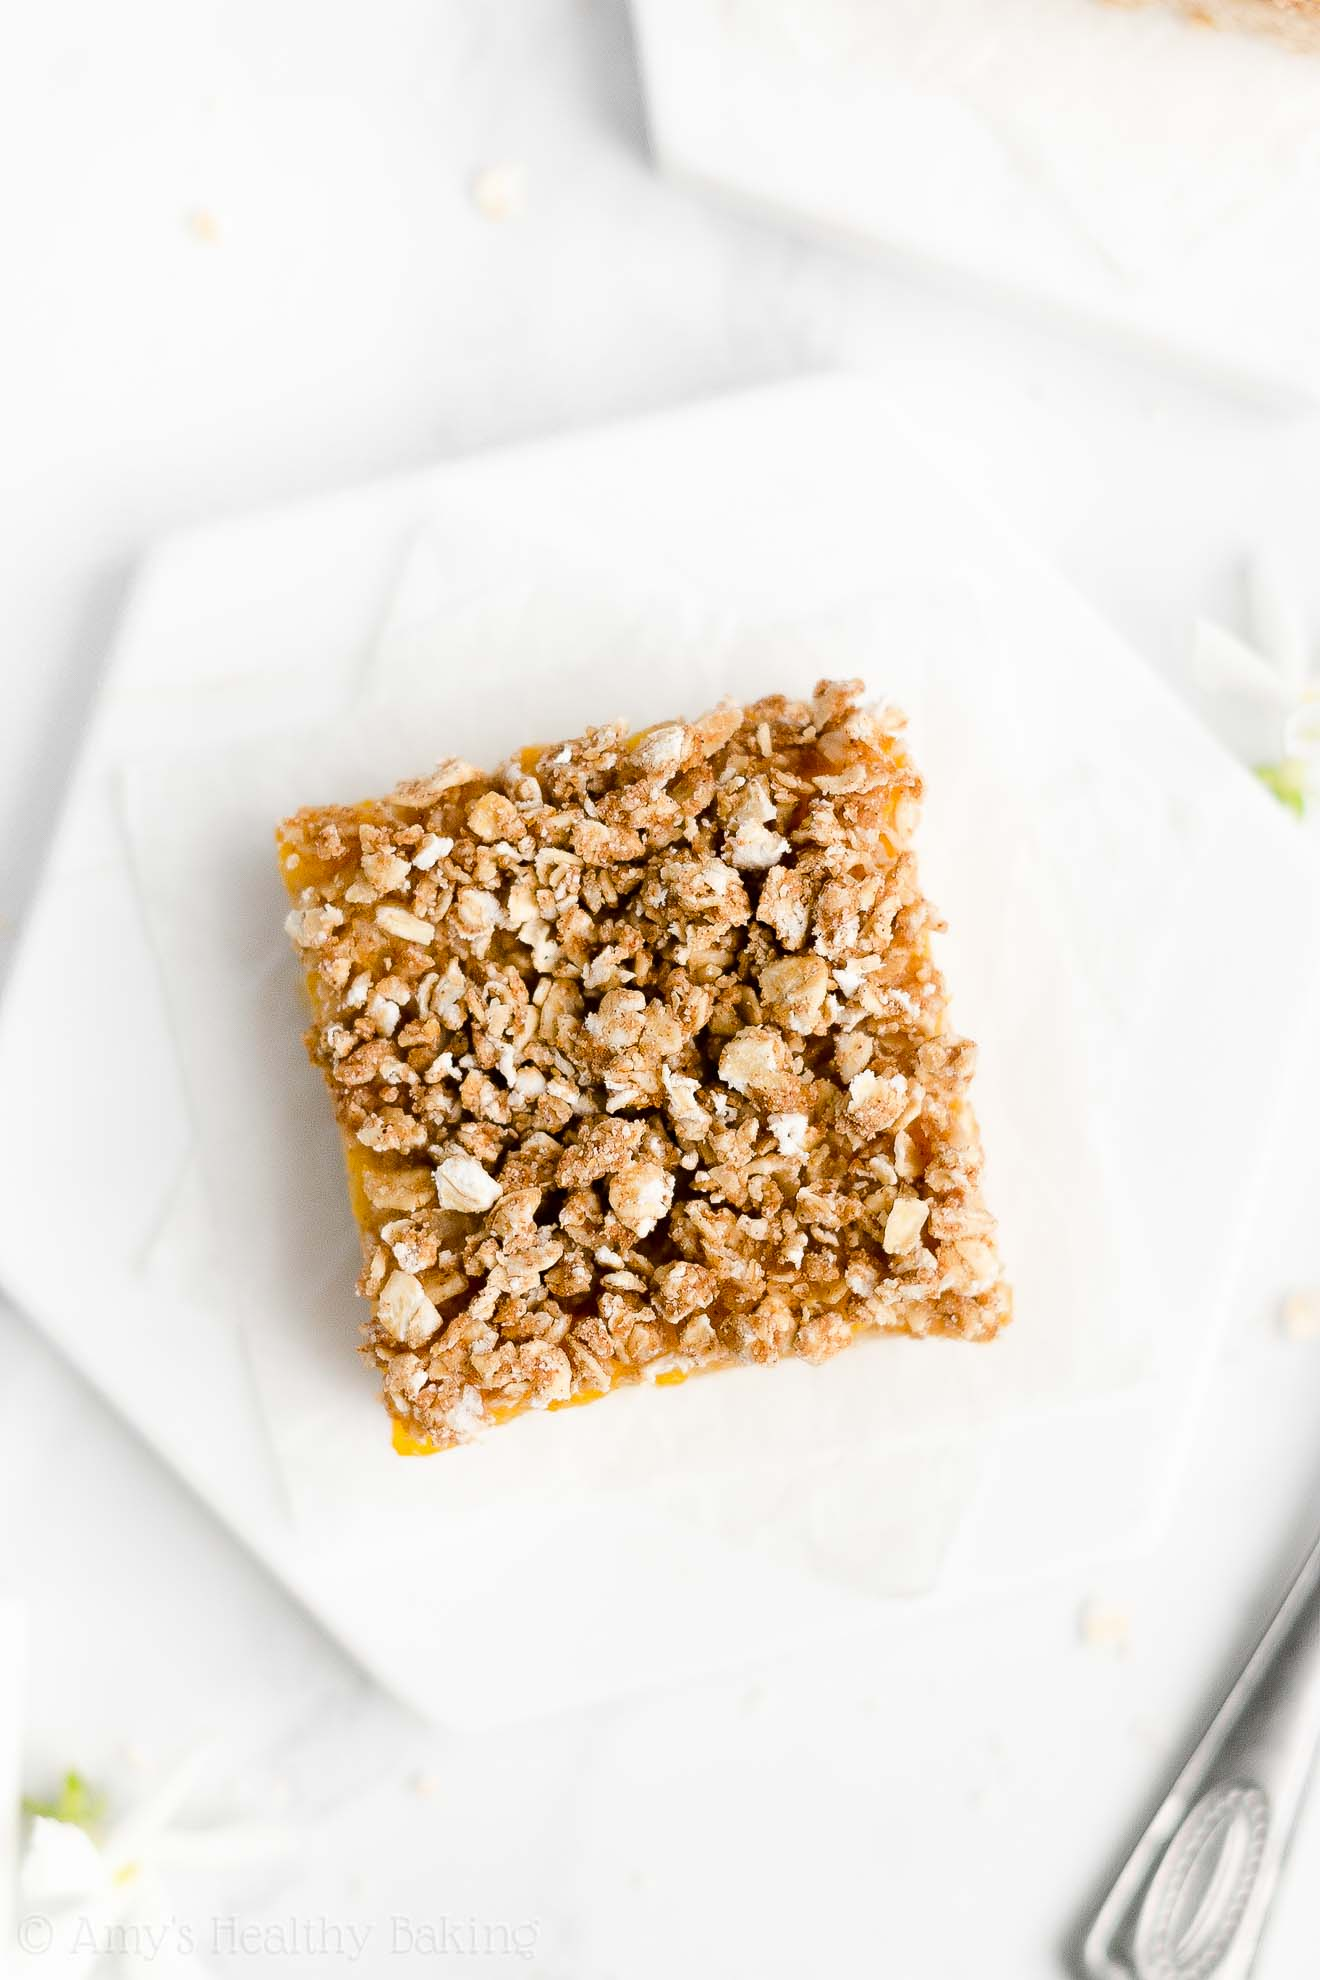 Best Easy Healthy Clean Eating Whole Wheat Low Sugar Peach Crumble Bars